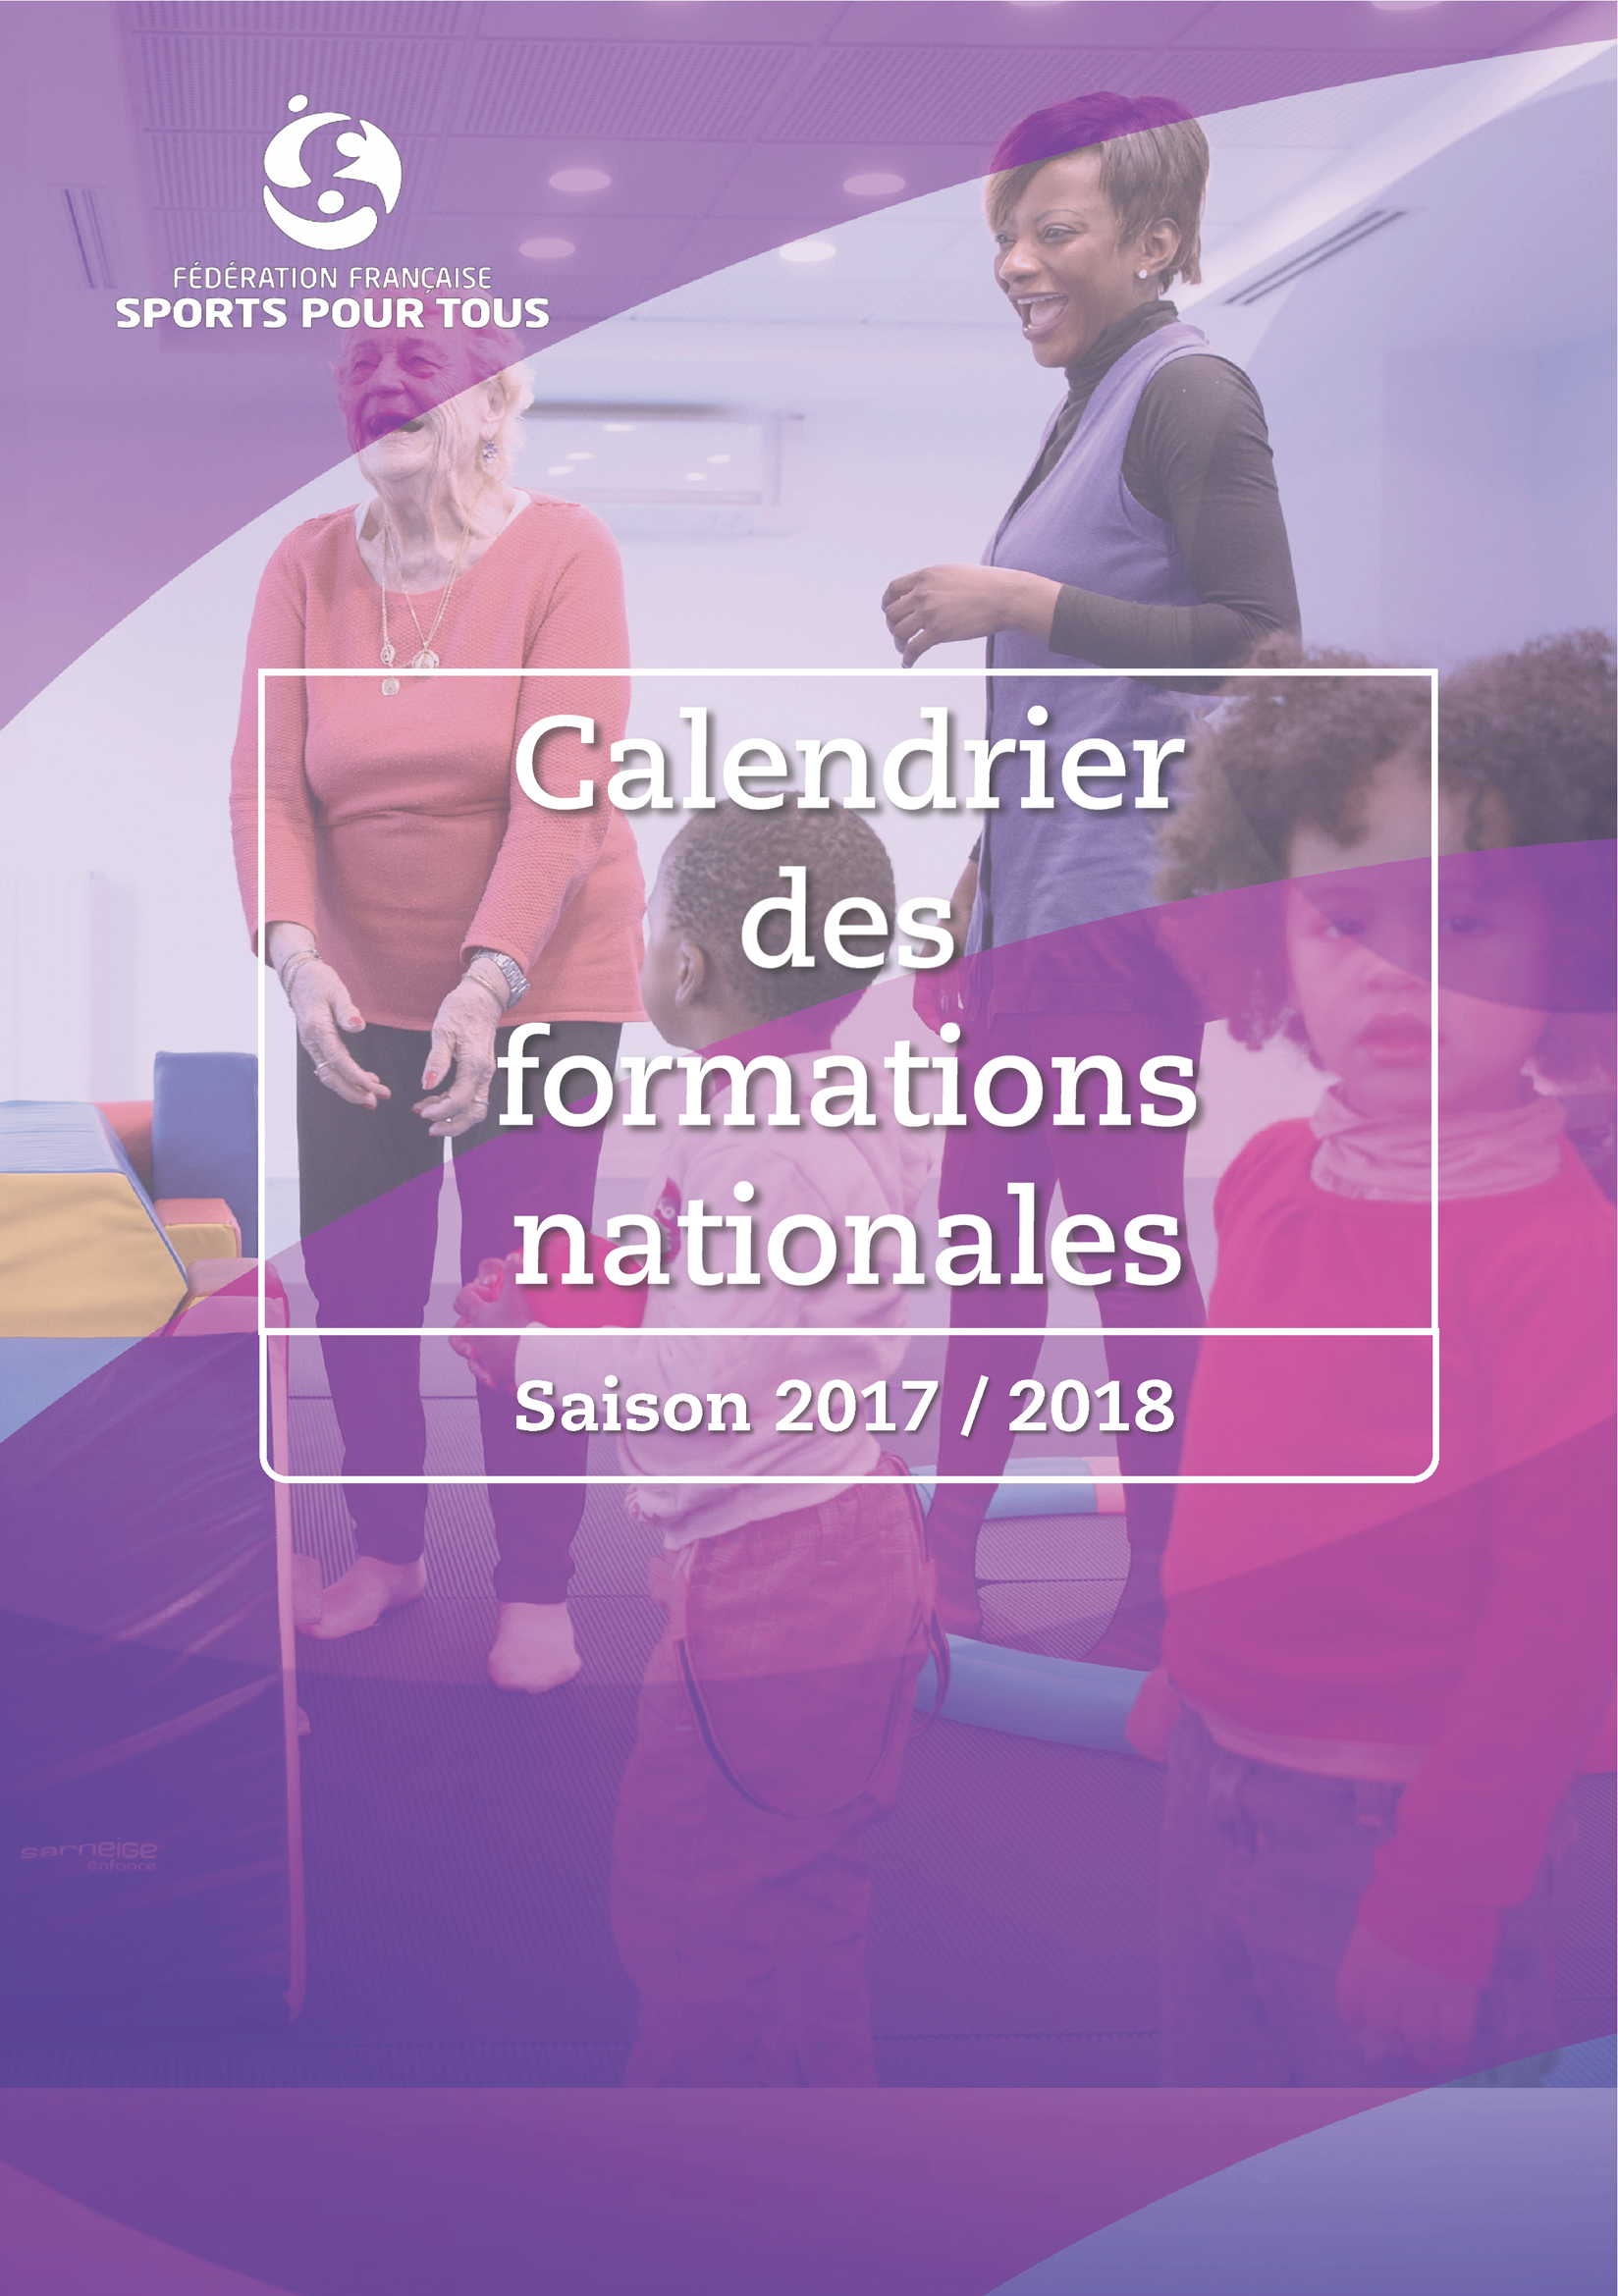 Calendrier des formations 2017/2018